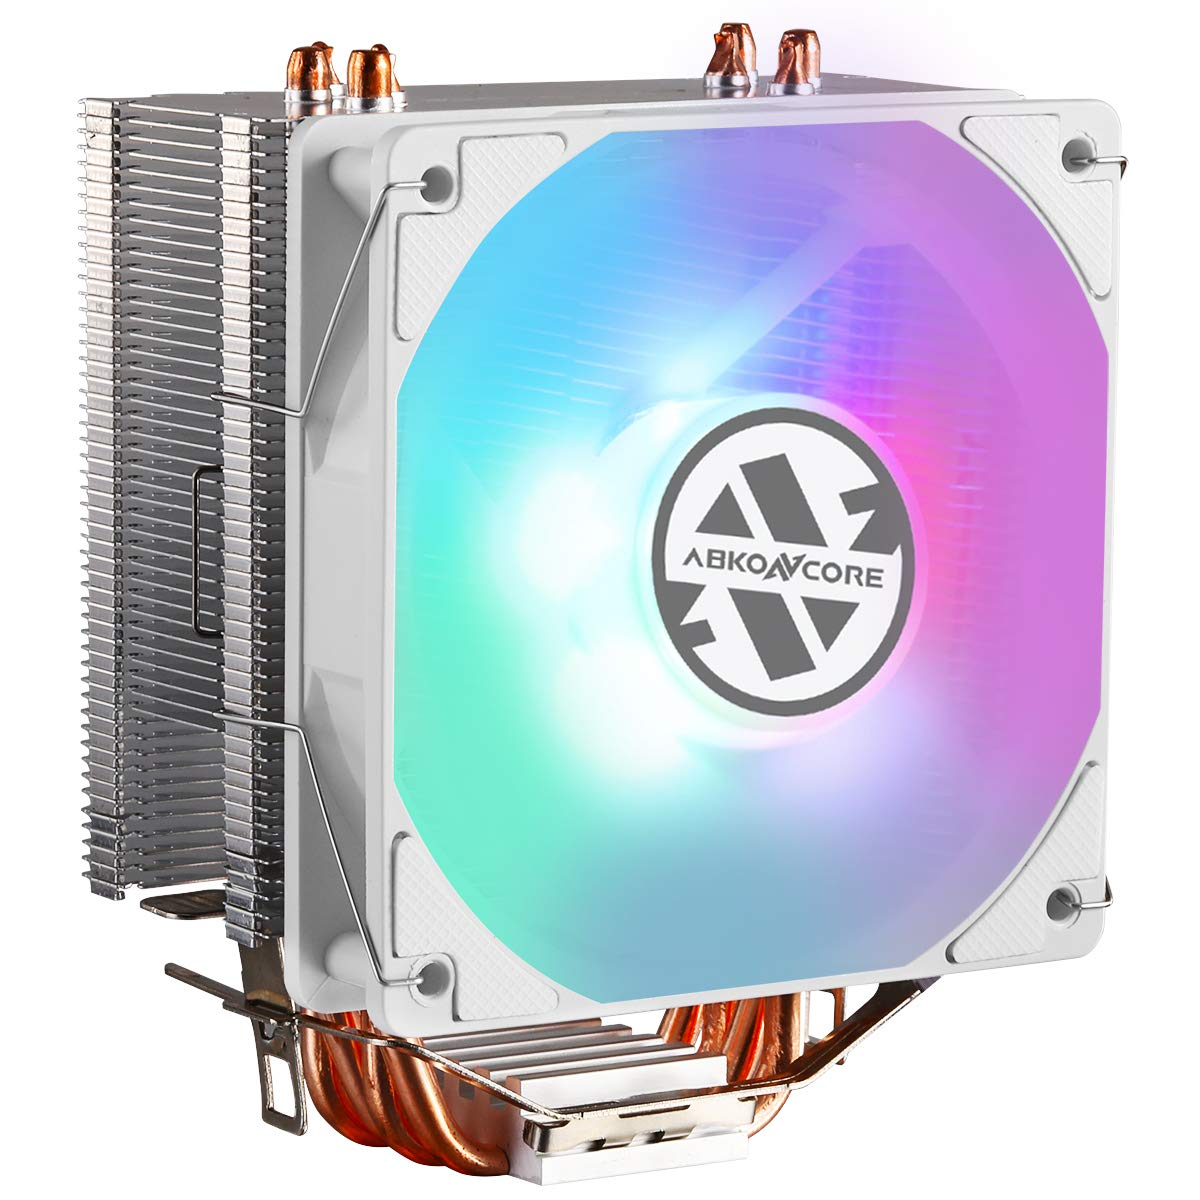 CPU Cooler ABKONCORE CT407W AIR With 92mm PWM Silent Fan 4 C